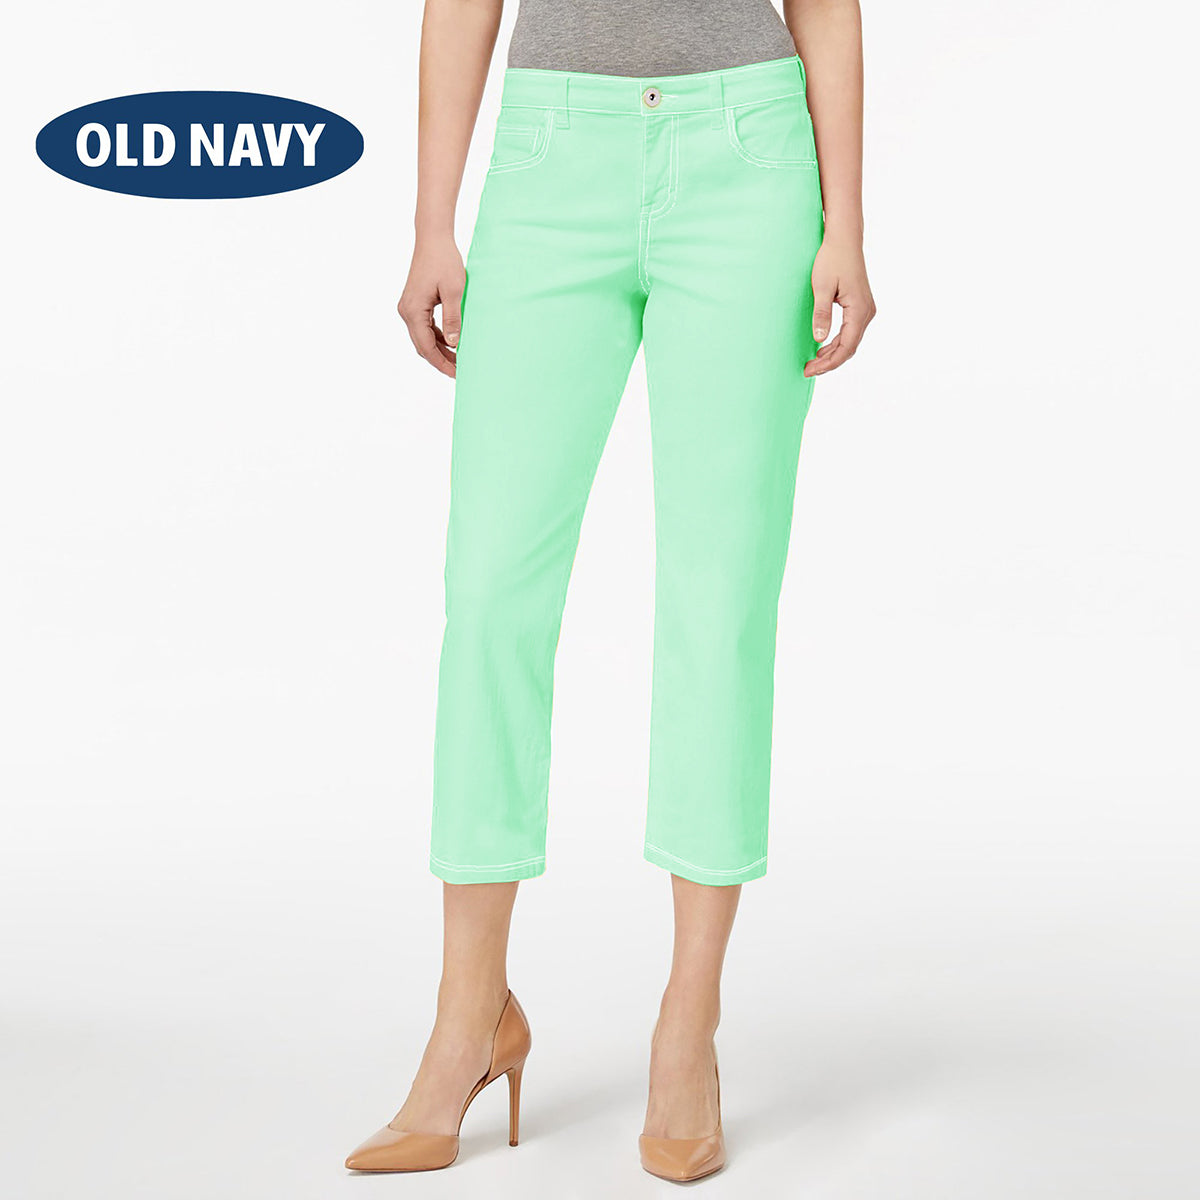 Old Navy Stylish Slim Fit Capri For Ladies-Light Sea Green-NA7678